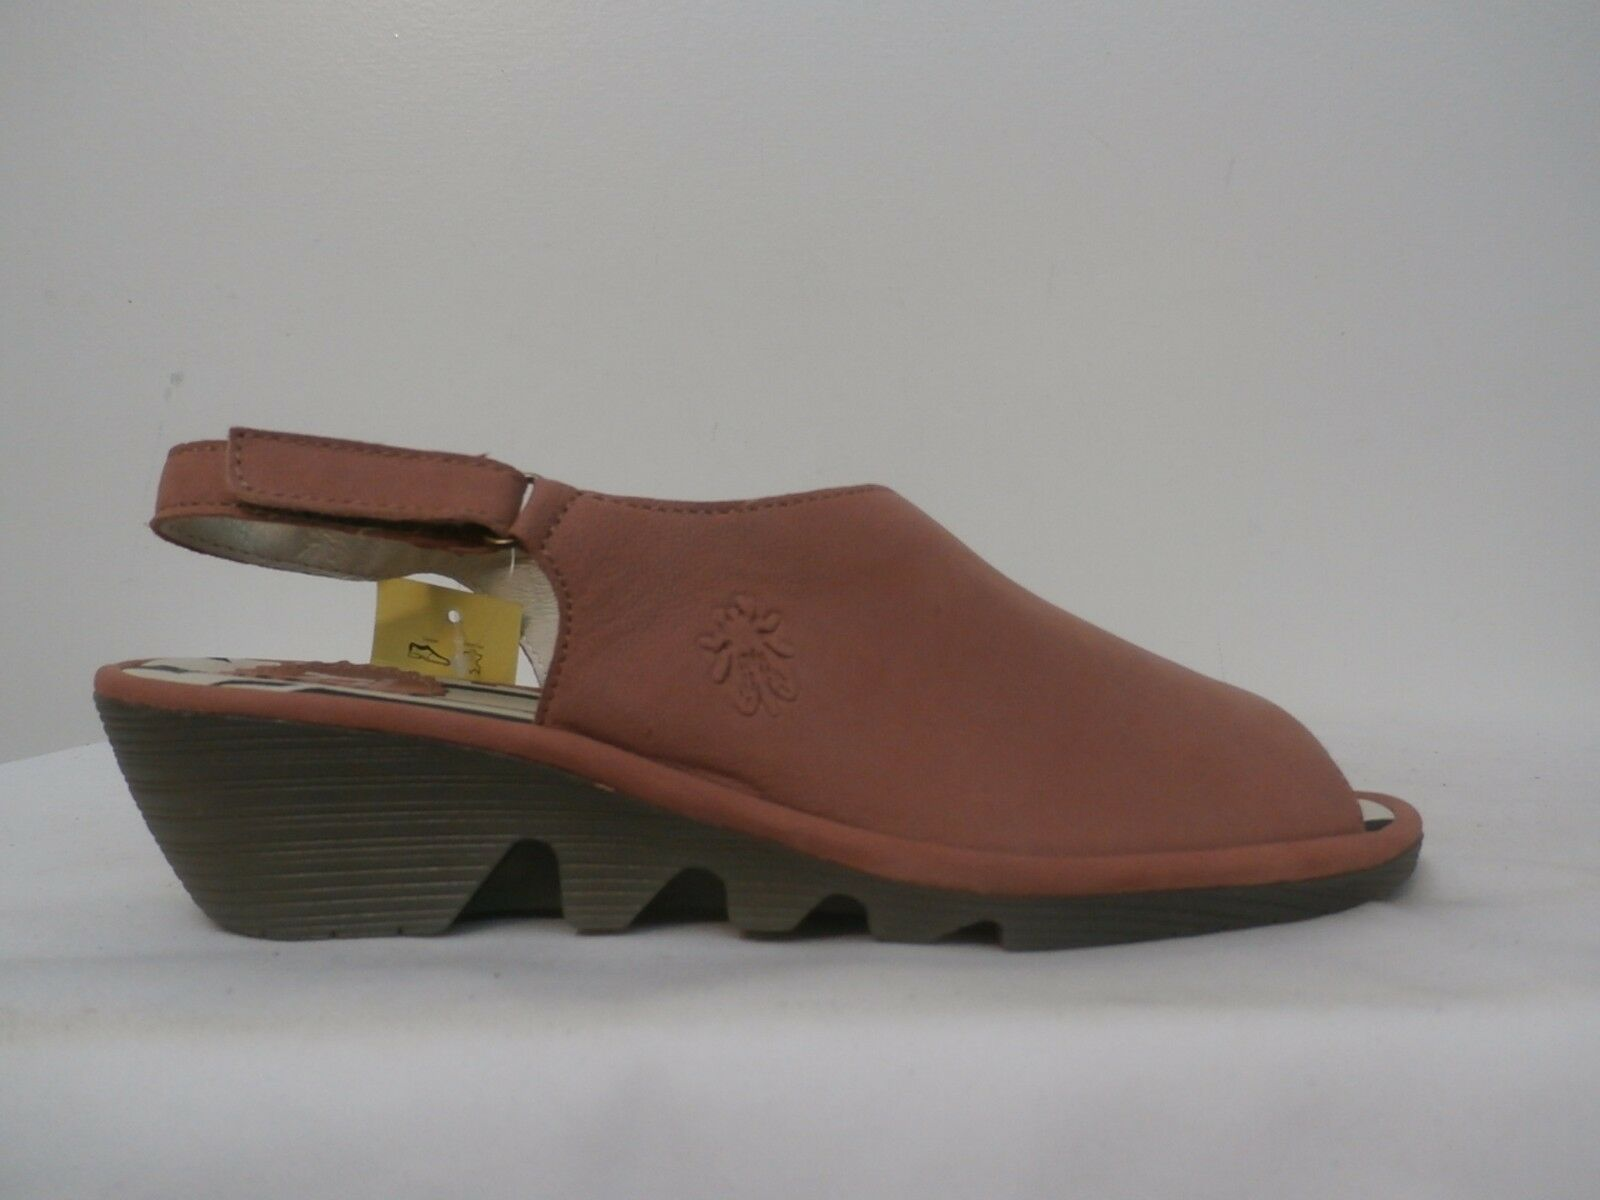 FLY London Leather Slingback Wedges - Palp pink Size 39 (8-8.5 US)